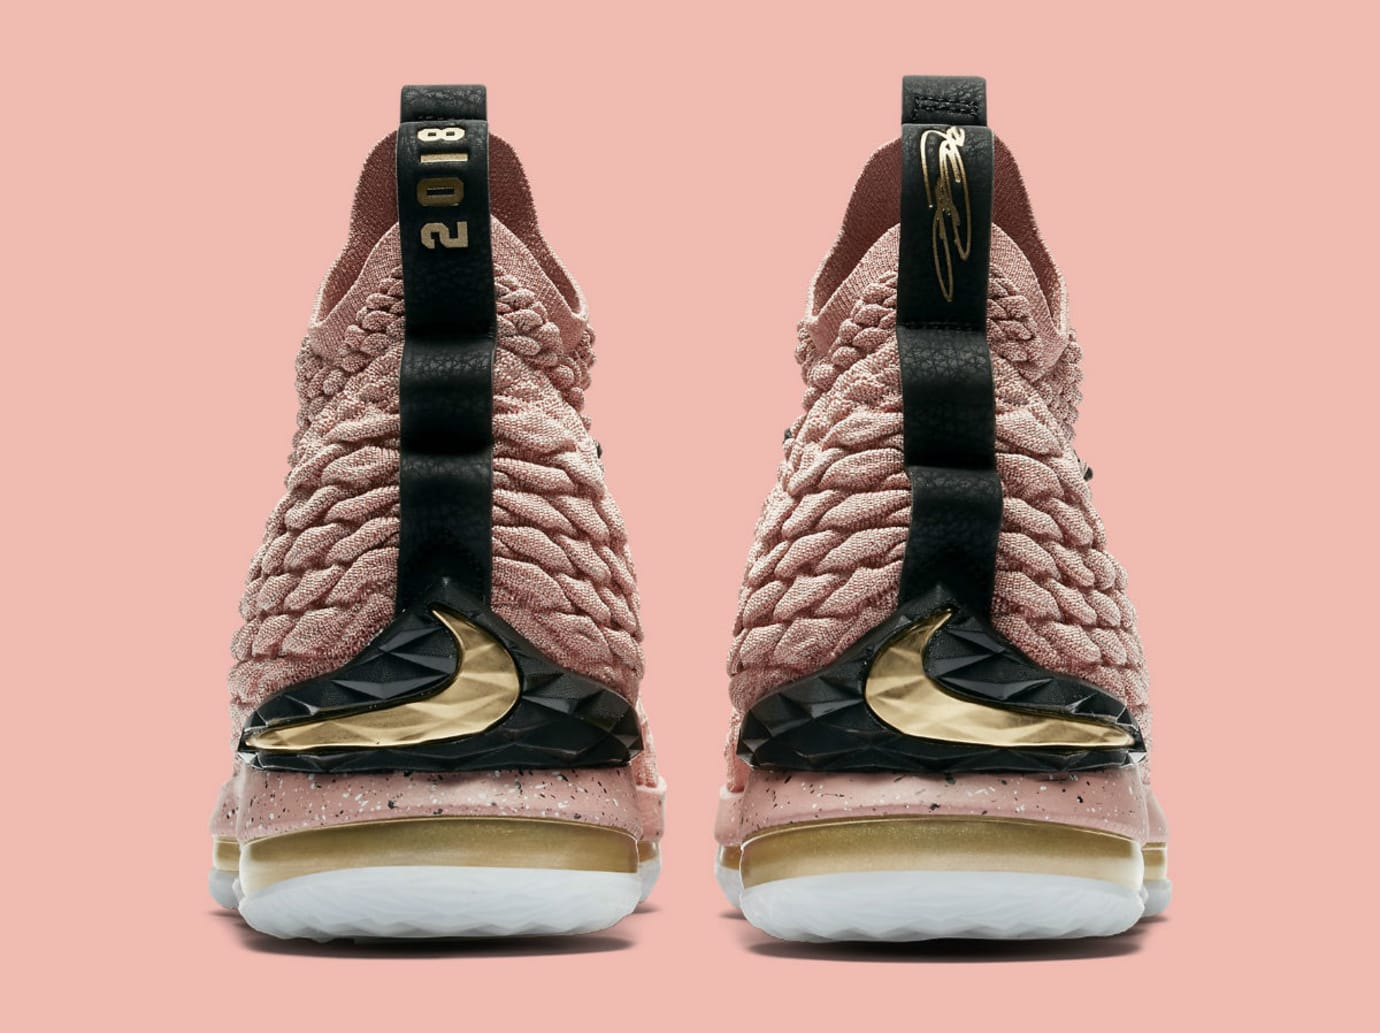 752fccea6 Nike LeBron 15 All-Star Pink Release Date 897650-600 Main